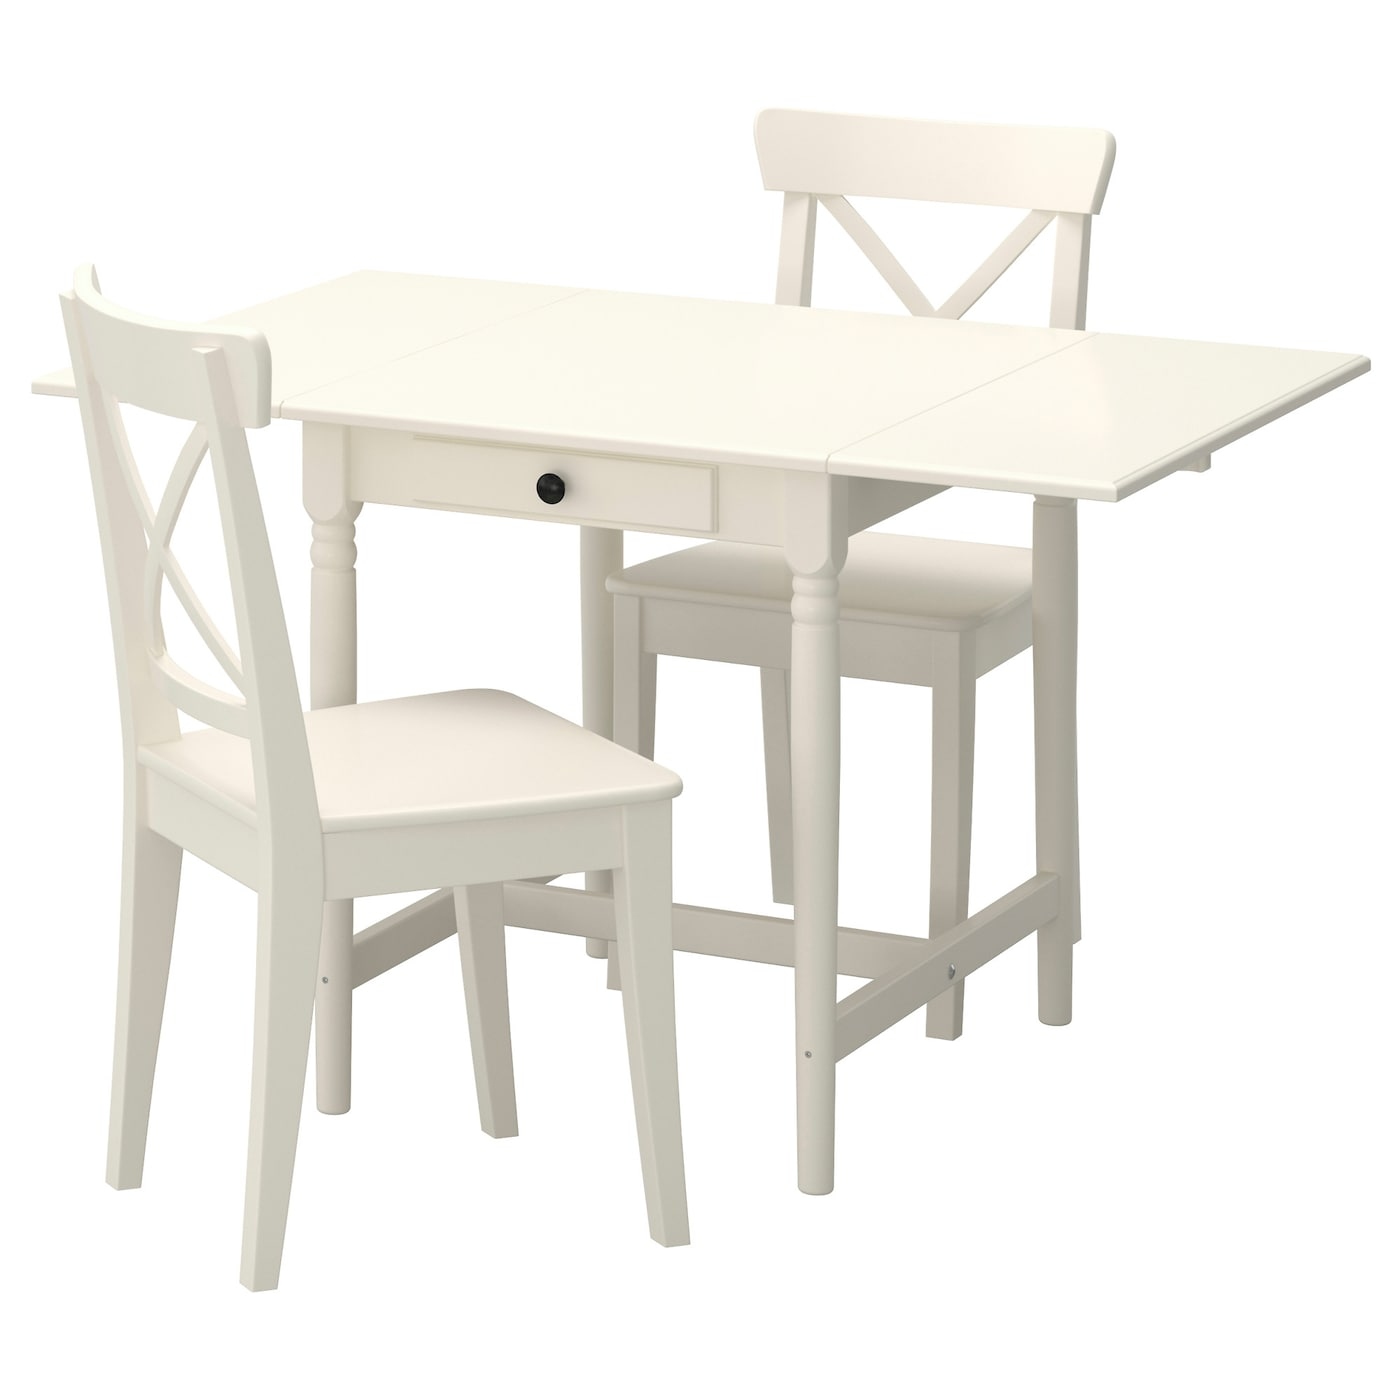 Small dining table sets 2 seater dining table chairs ikea Small white dining table